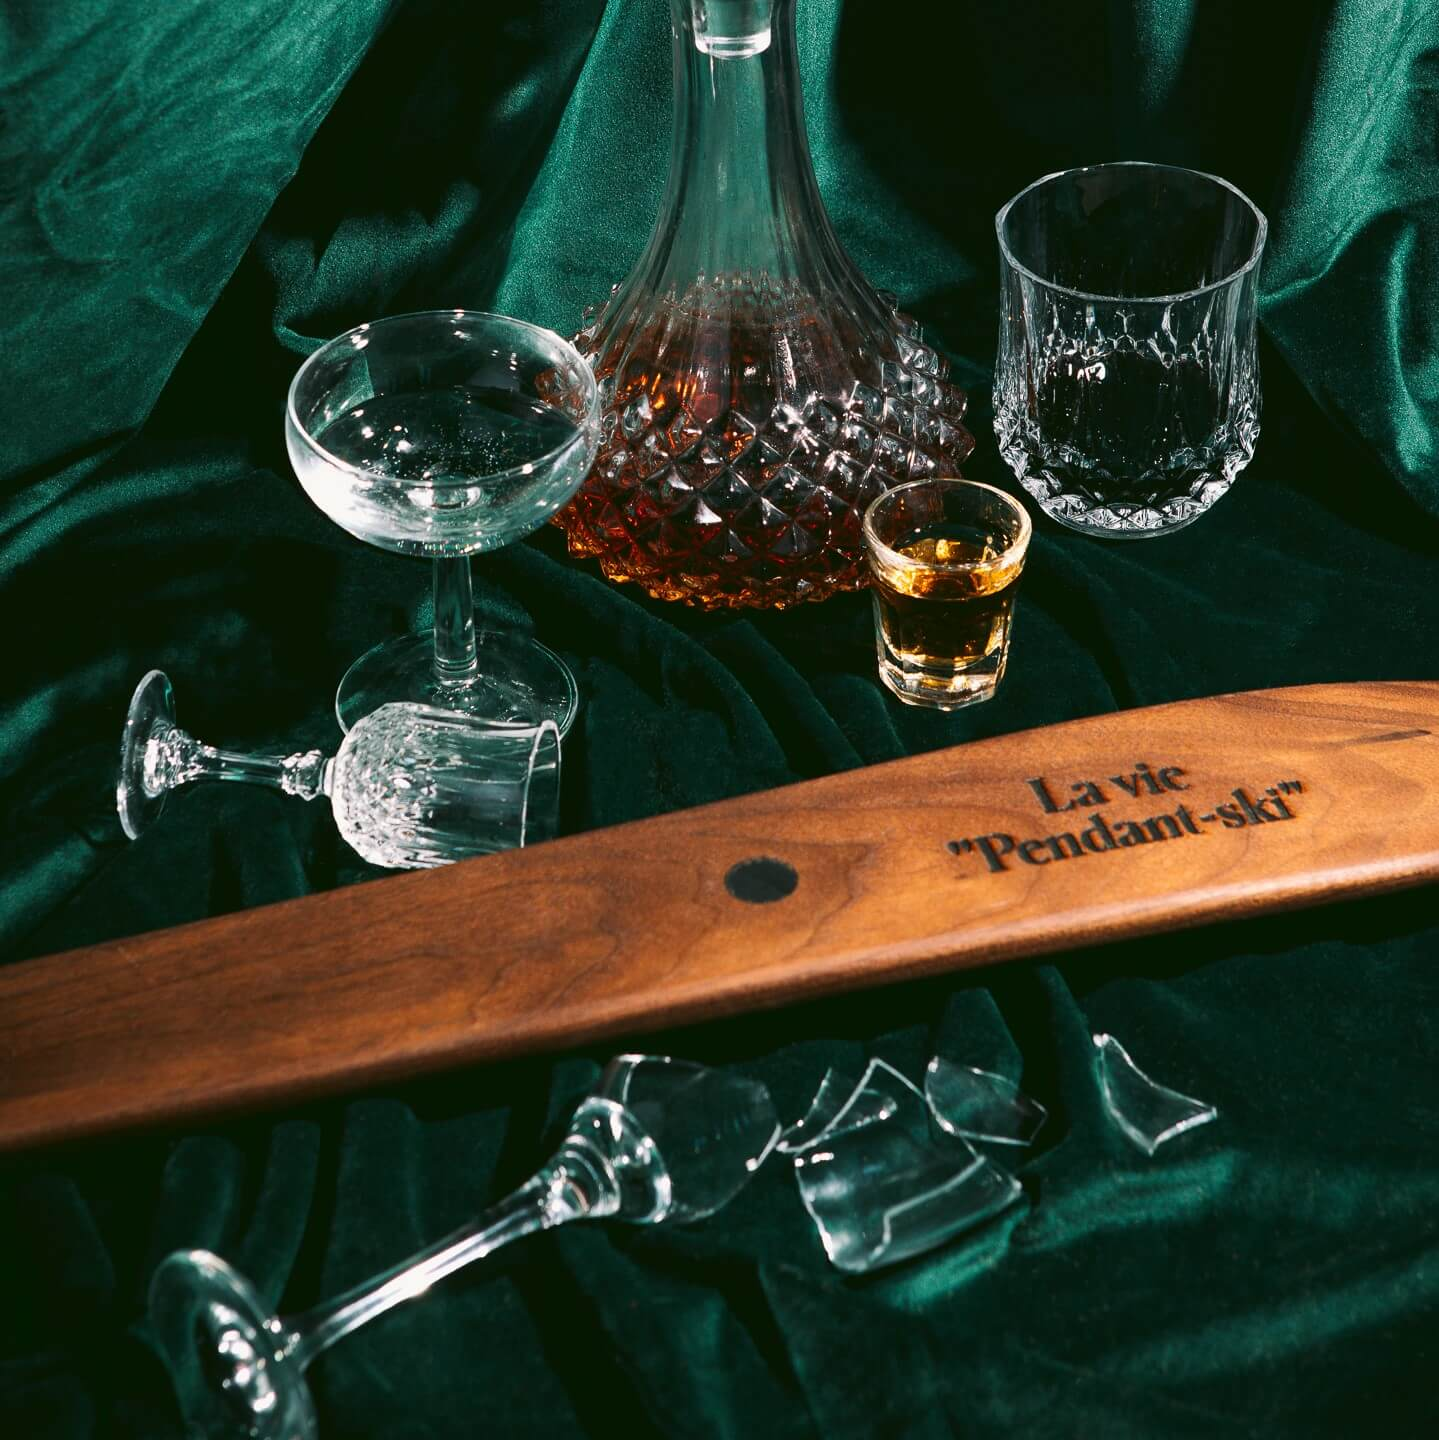 Flatlay of engraved walnut shot ski surrounded by messy drink glasses on a green curtain.